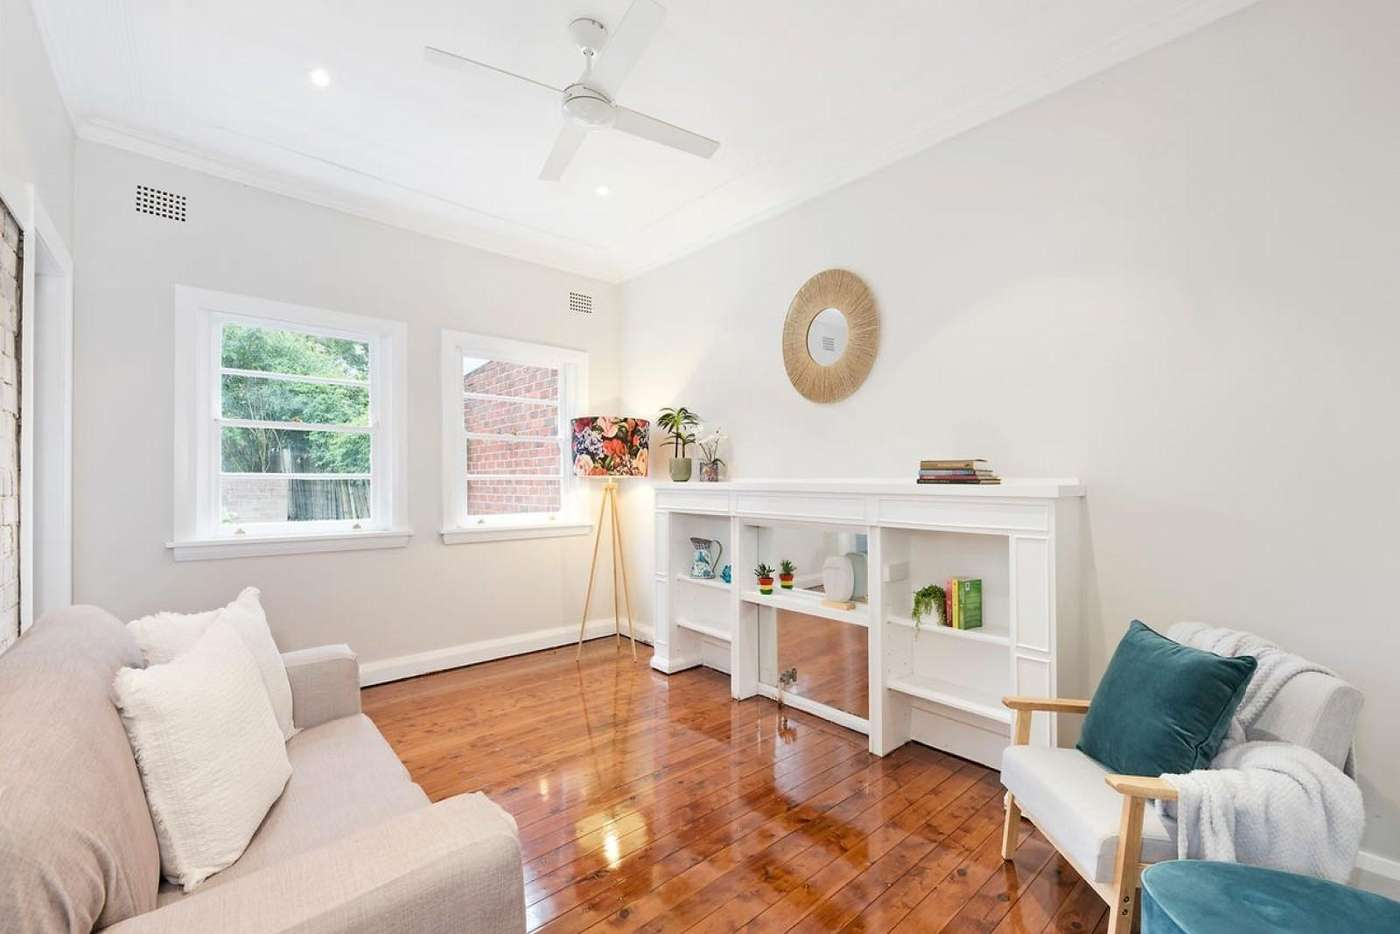 Main view of Homely house listing, 21A Robert Street, Willoughby NSW 2068